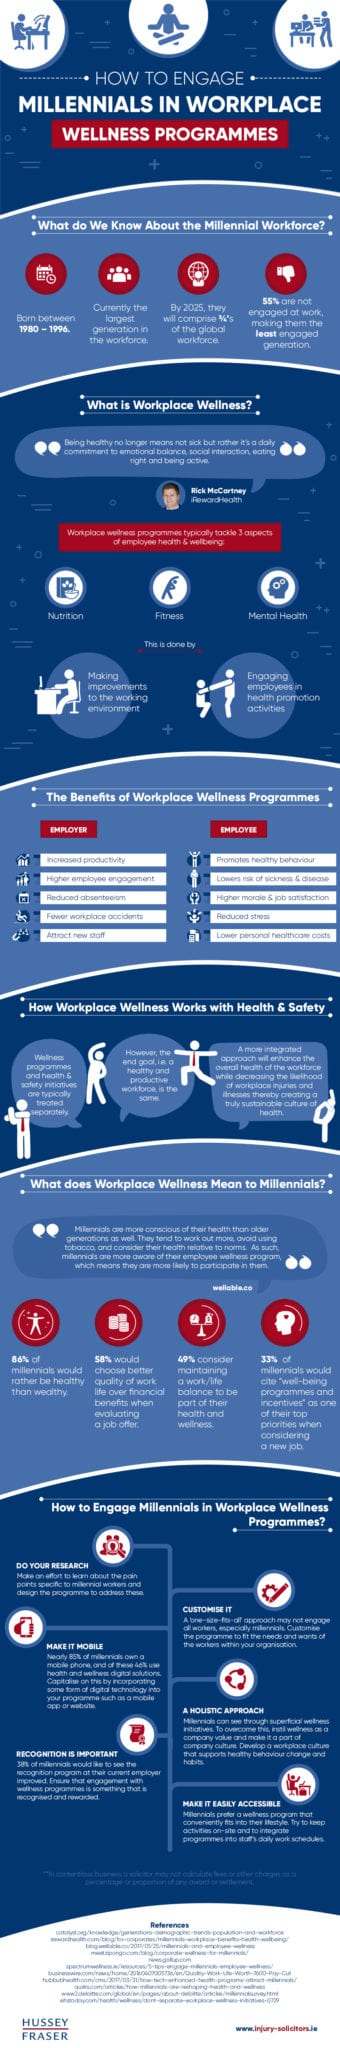 Infographic on how to engage millennials